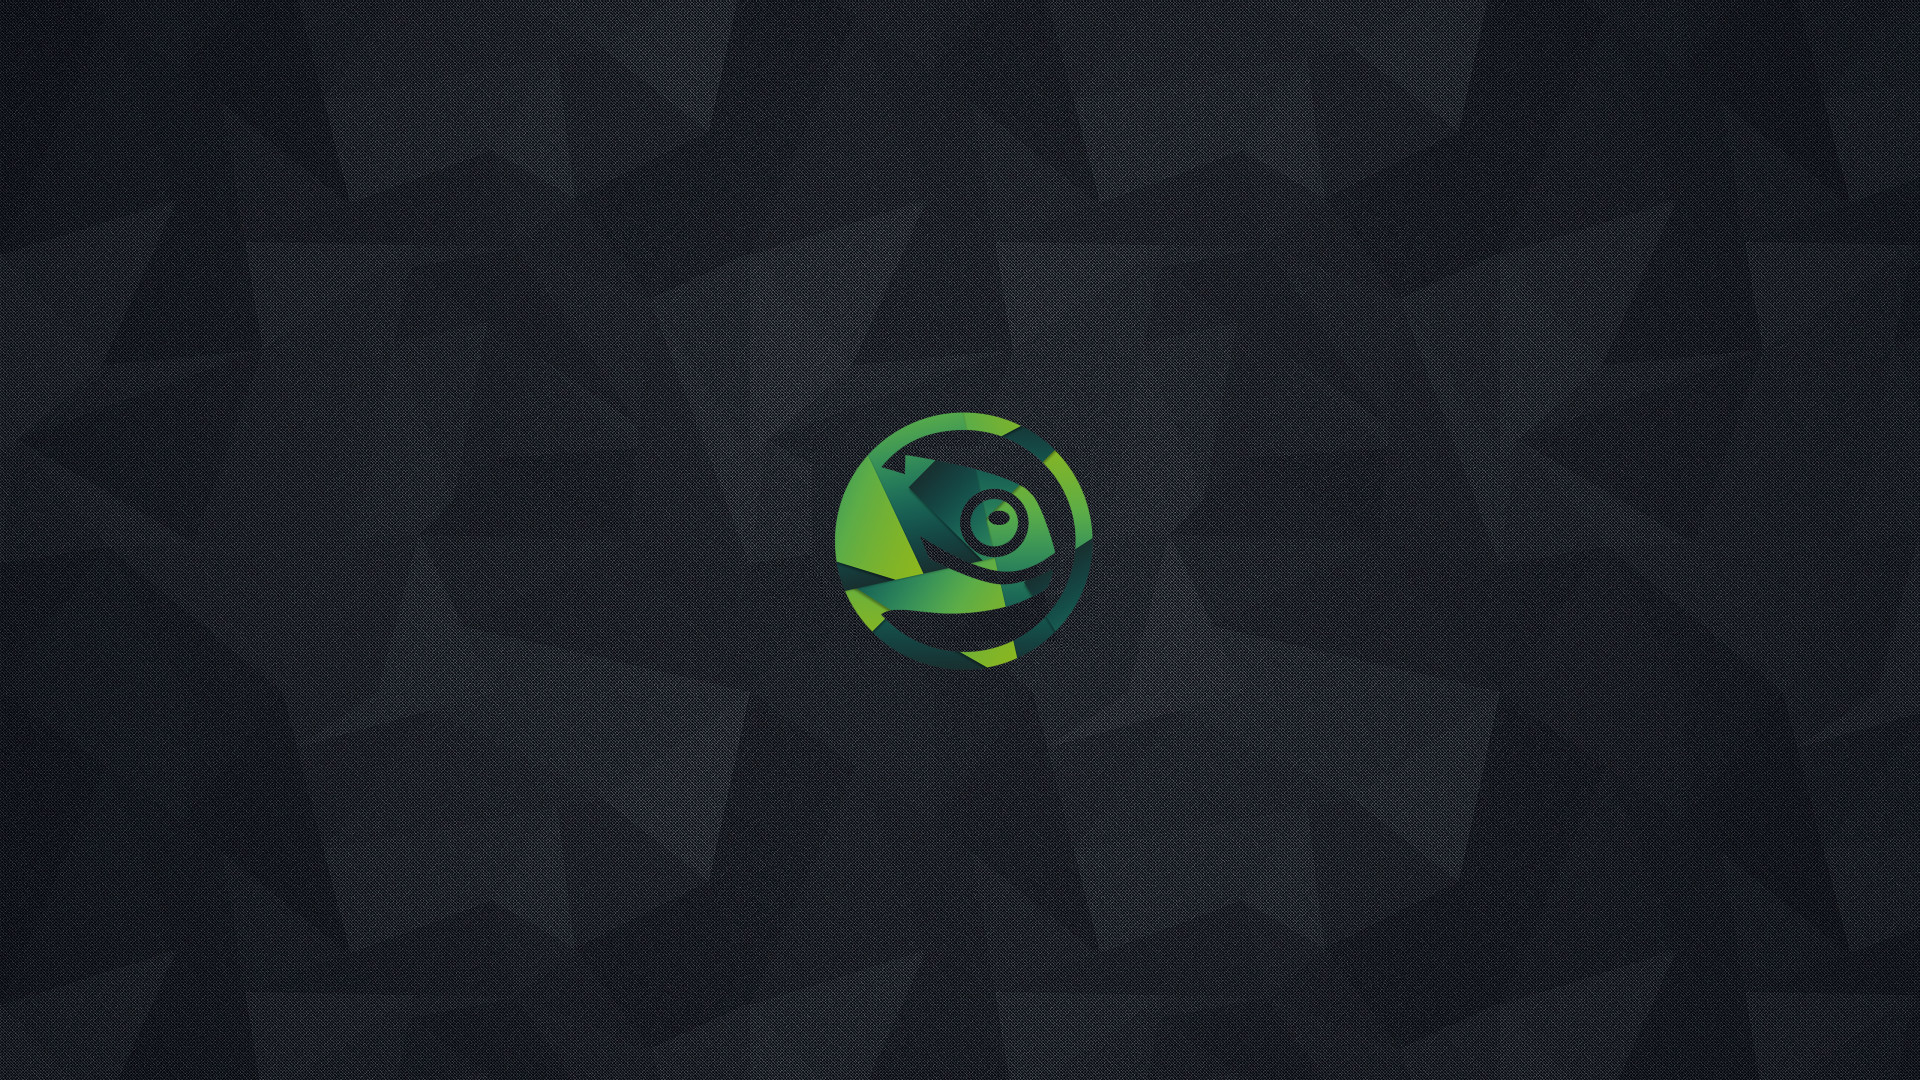 Opensuse Wallpaper ·â'